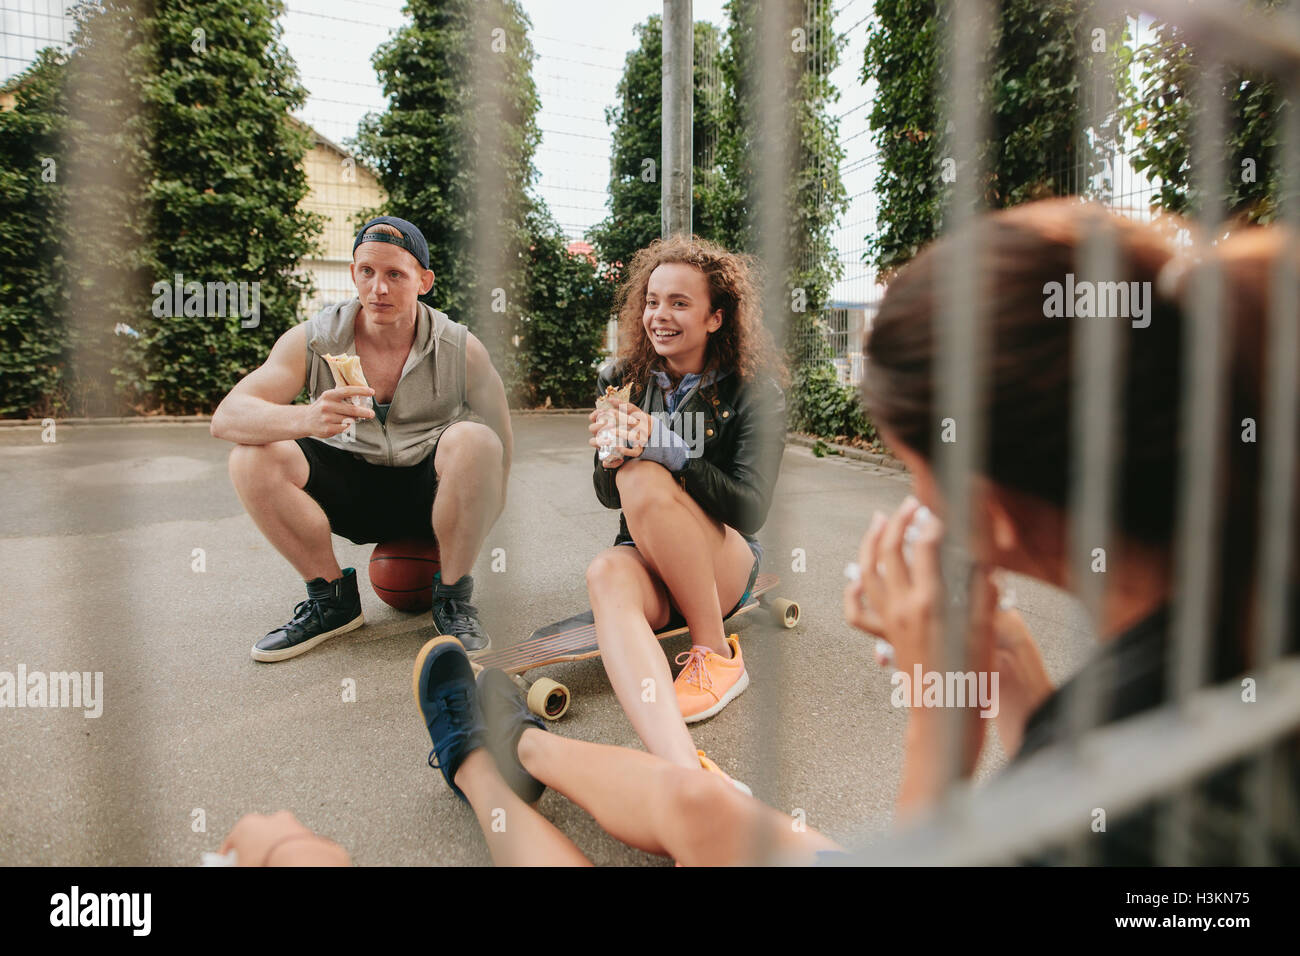 Group of friends sitting at outdoor basketball court eating and having fun. Teenagers relaxing basketball court. - Stock Image